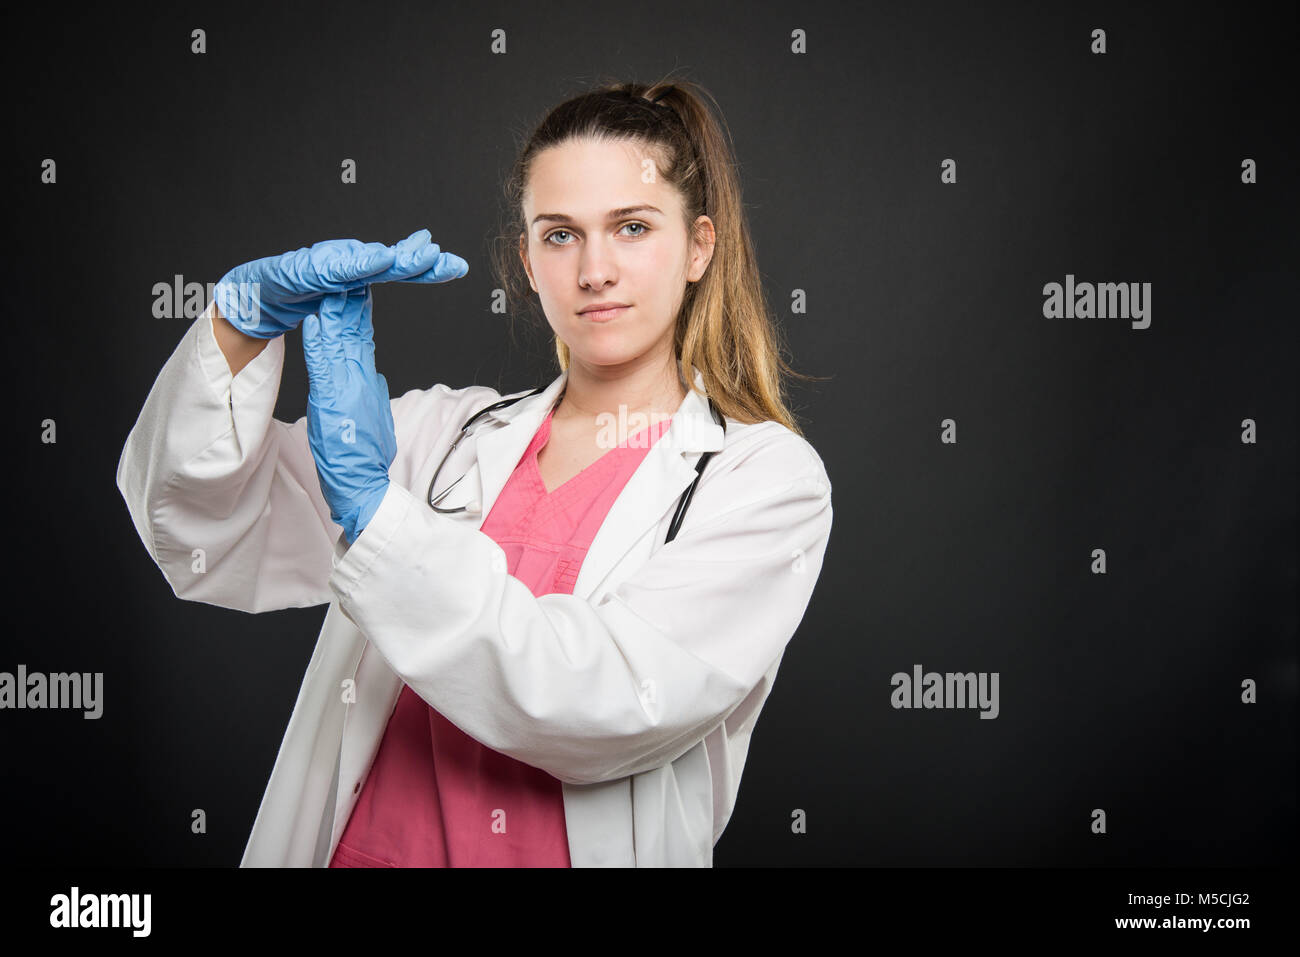 Young doctor portrait  wearing robe showing time out gesture on black background with copyspace advertising area - Stock Image